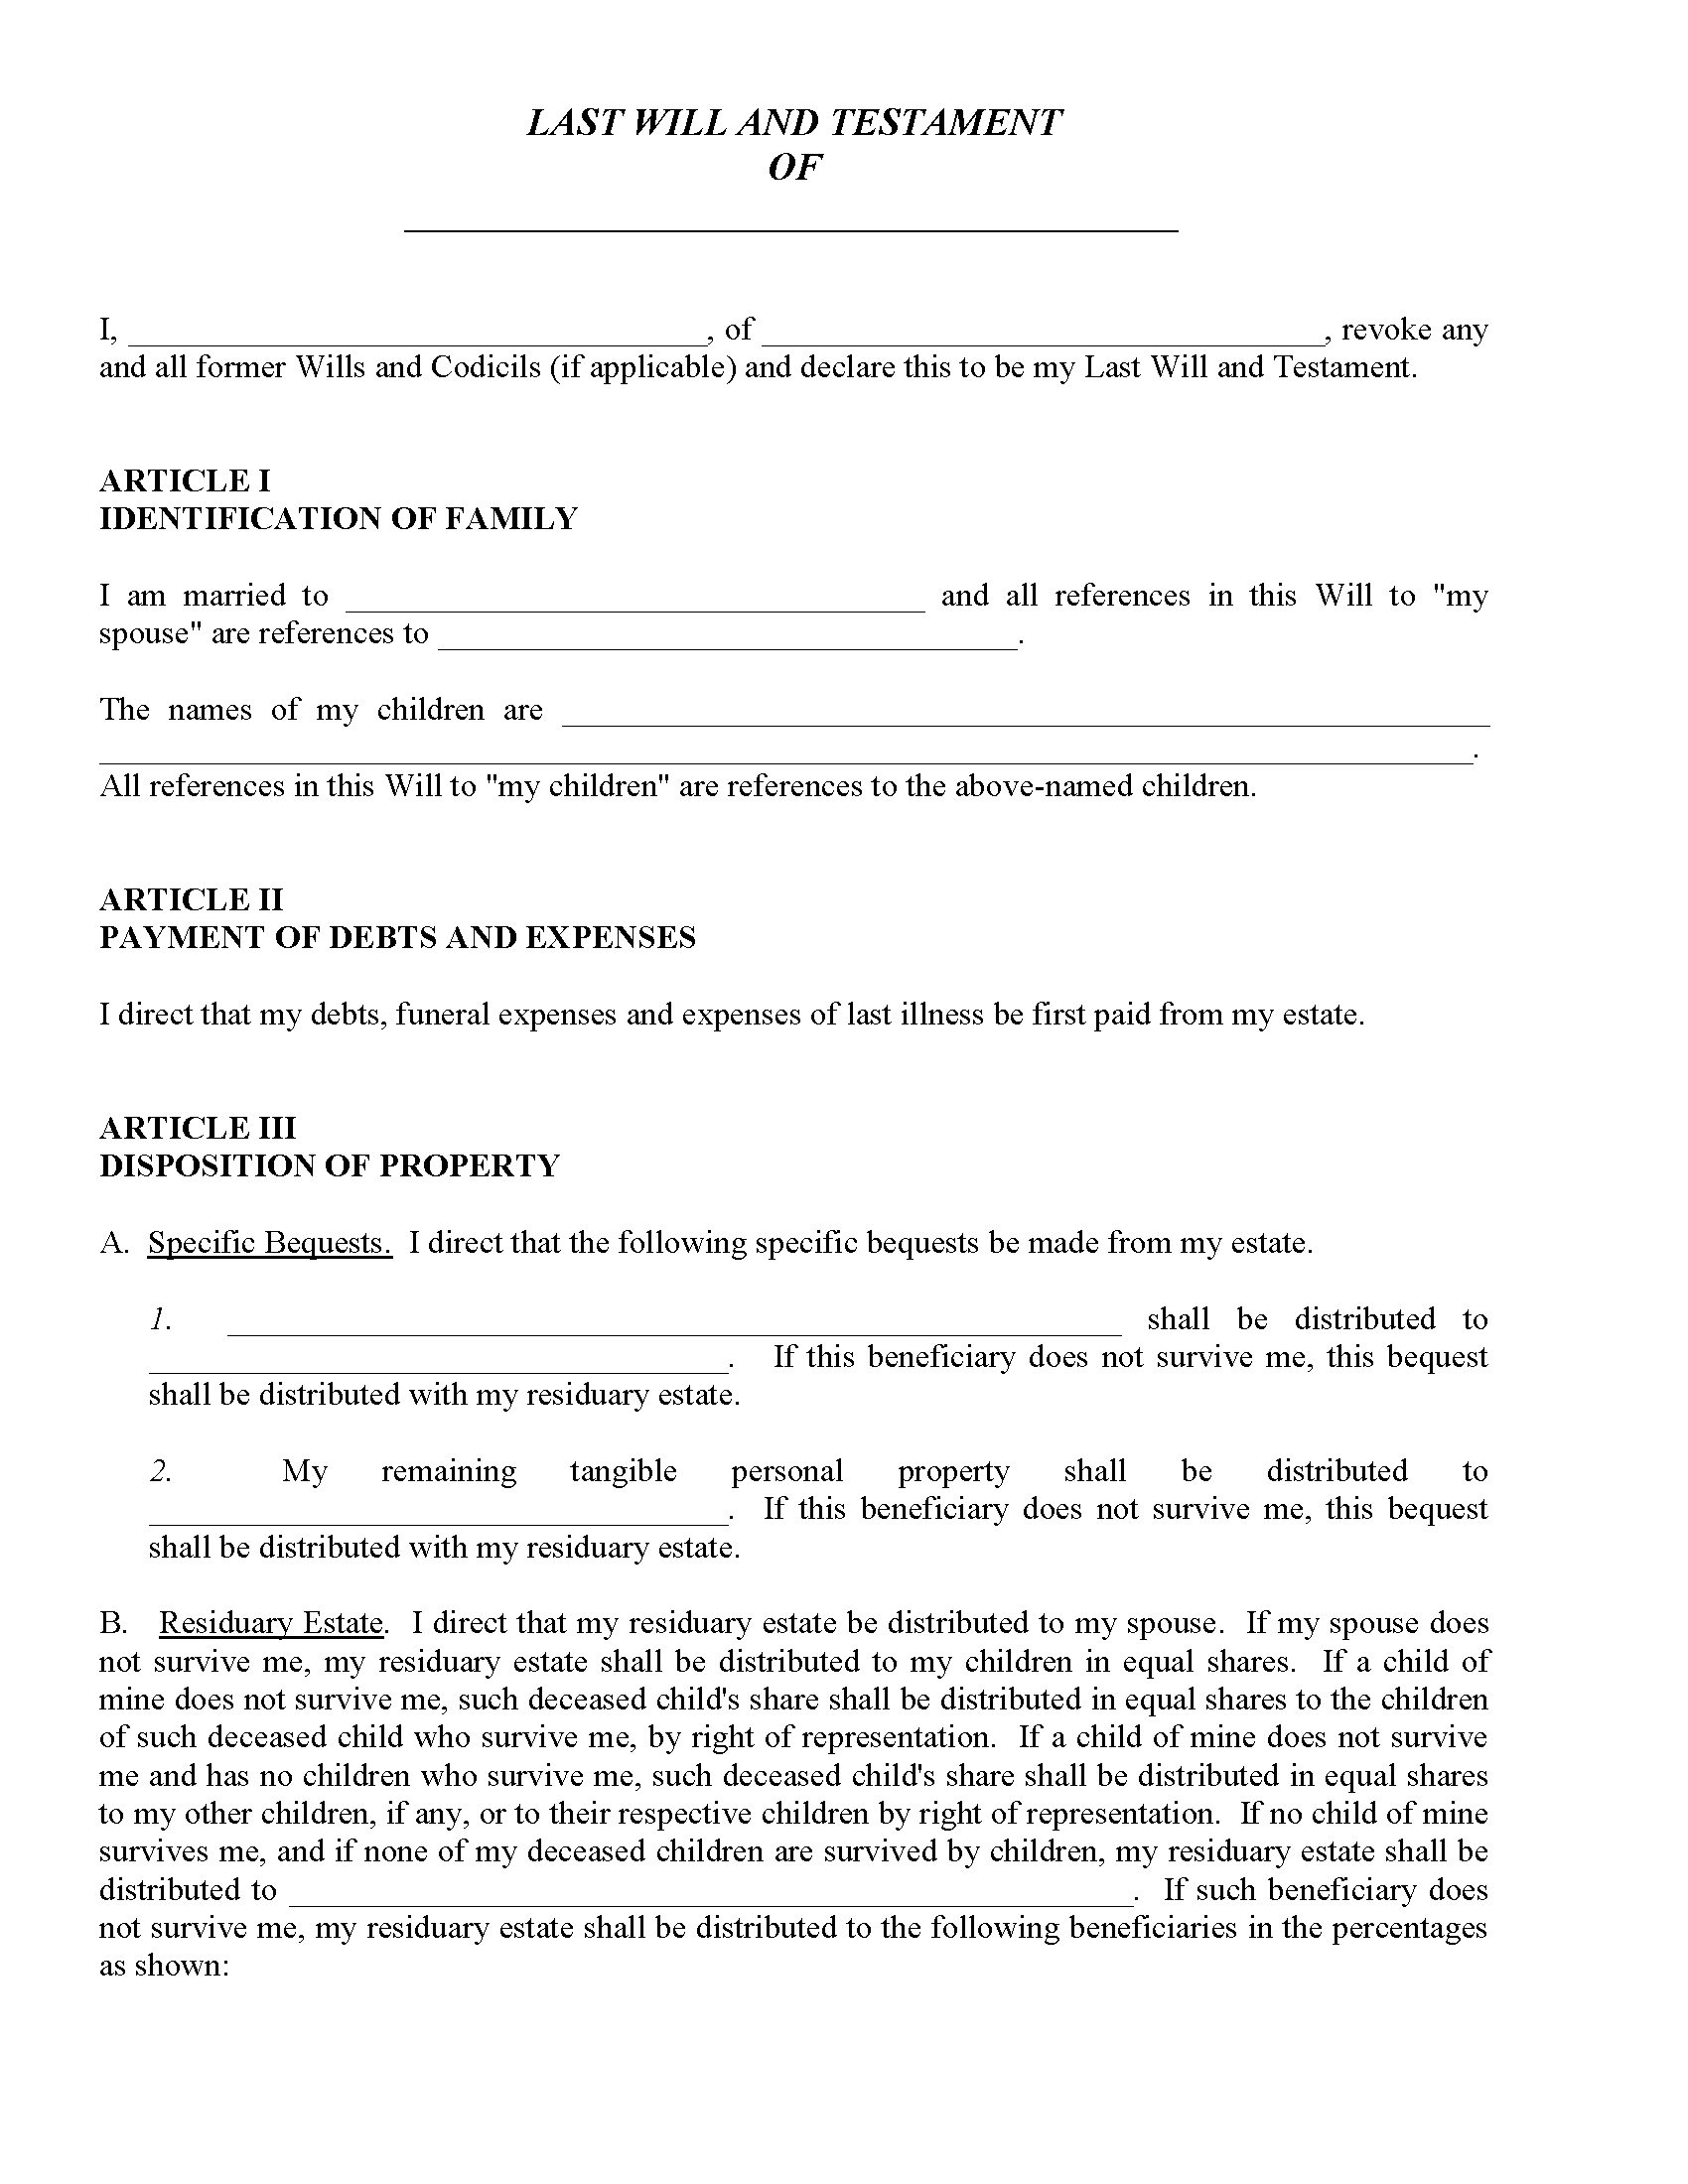 Free Printable Wills Just Fill In The Blanks Blank Wills